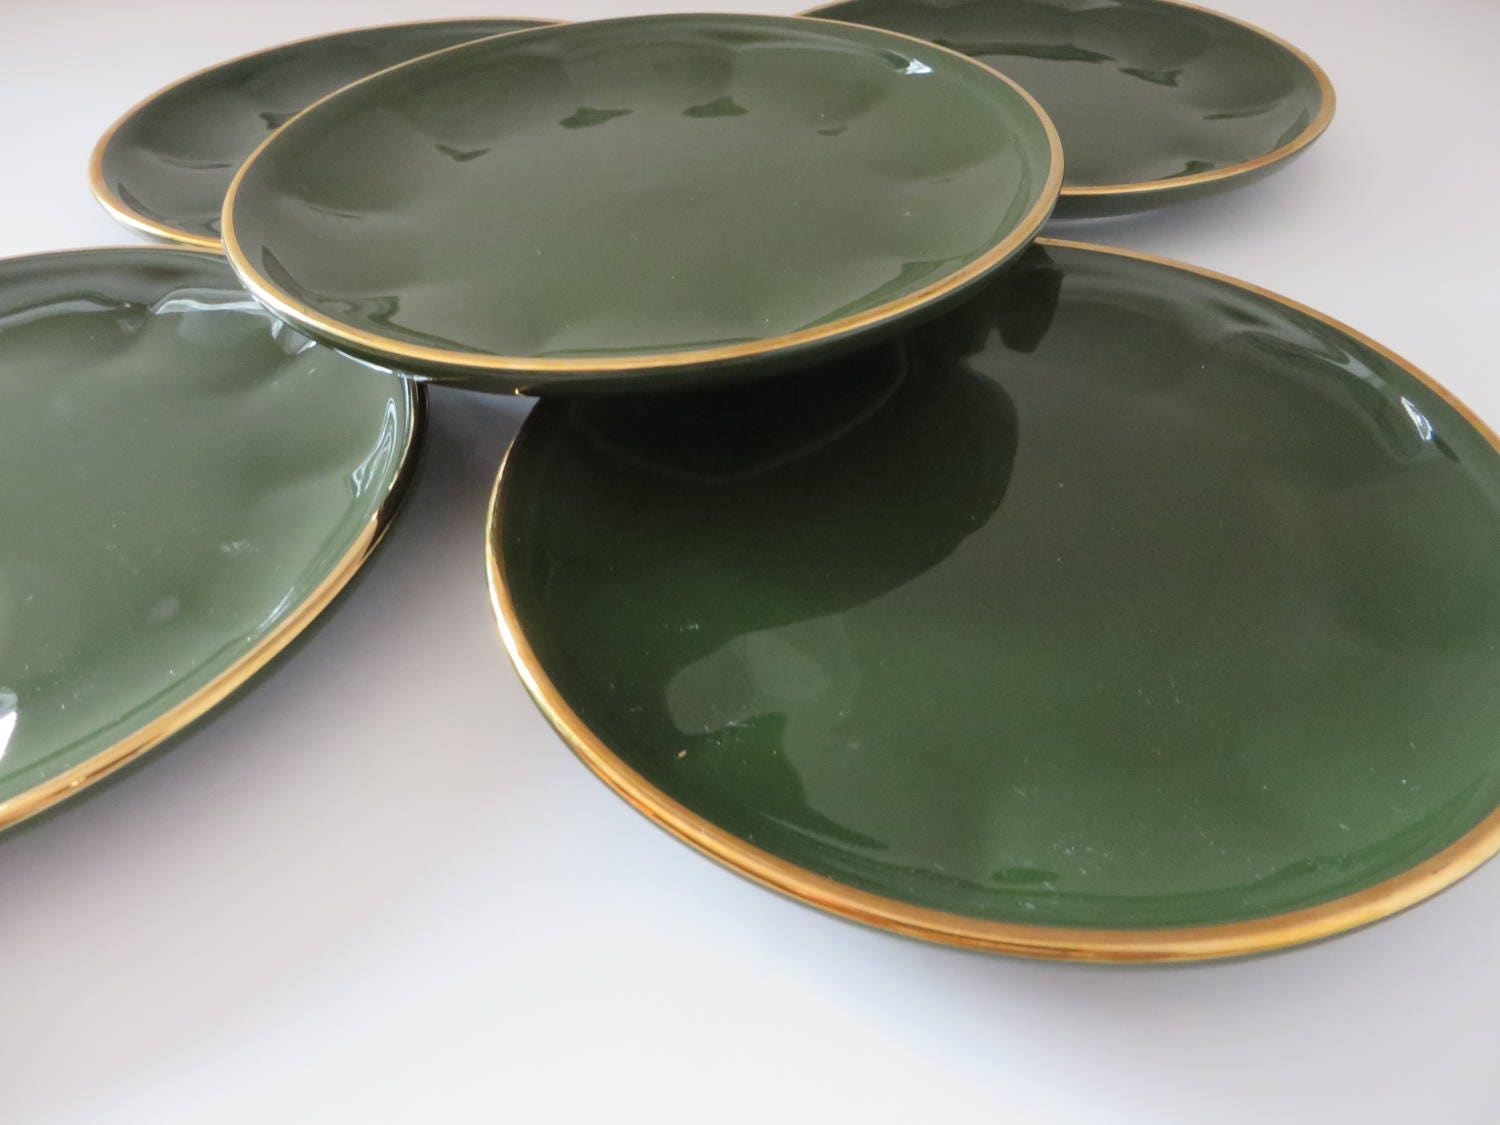 Apilco Yves Deshoulieres vintage 1980\'s green and gold tea plate